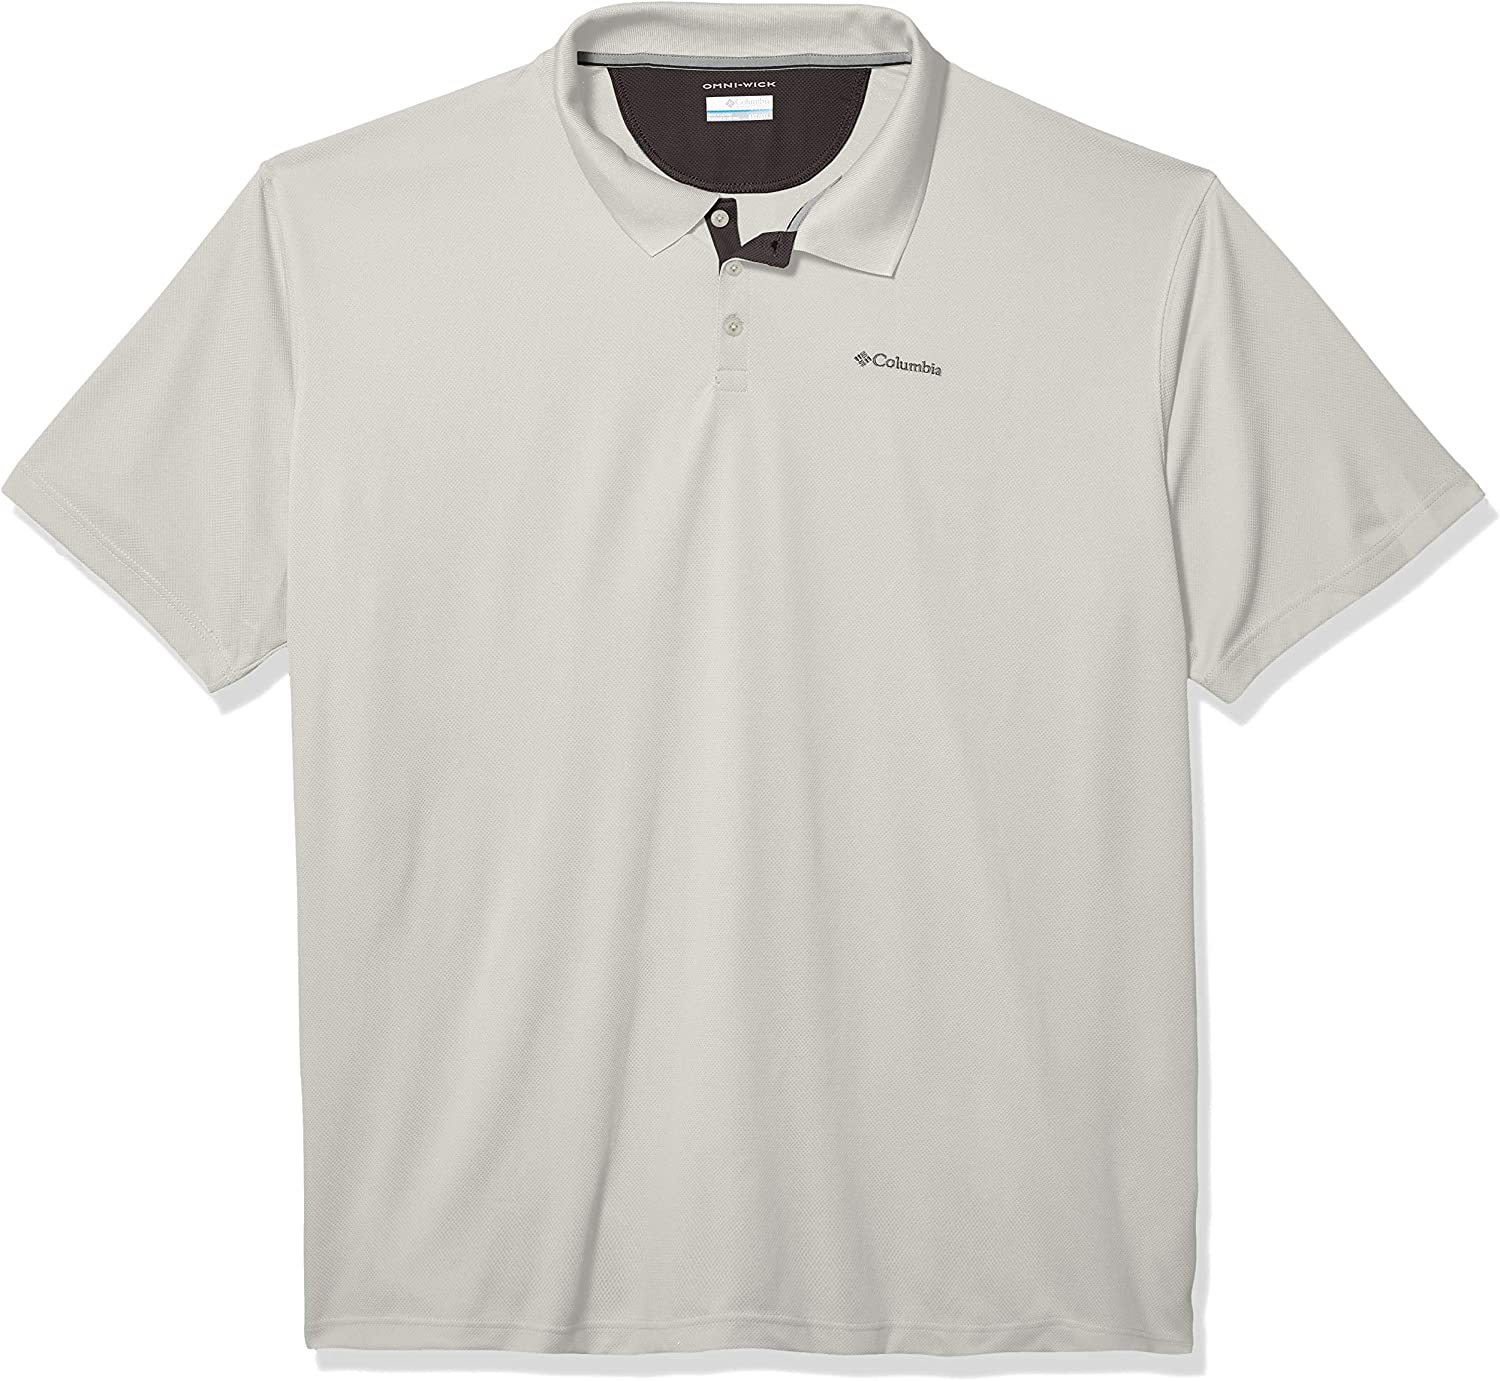 Columbia Men's Utilizer Short Sleeve Wicking Polo with Uv Protection